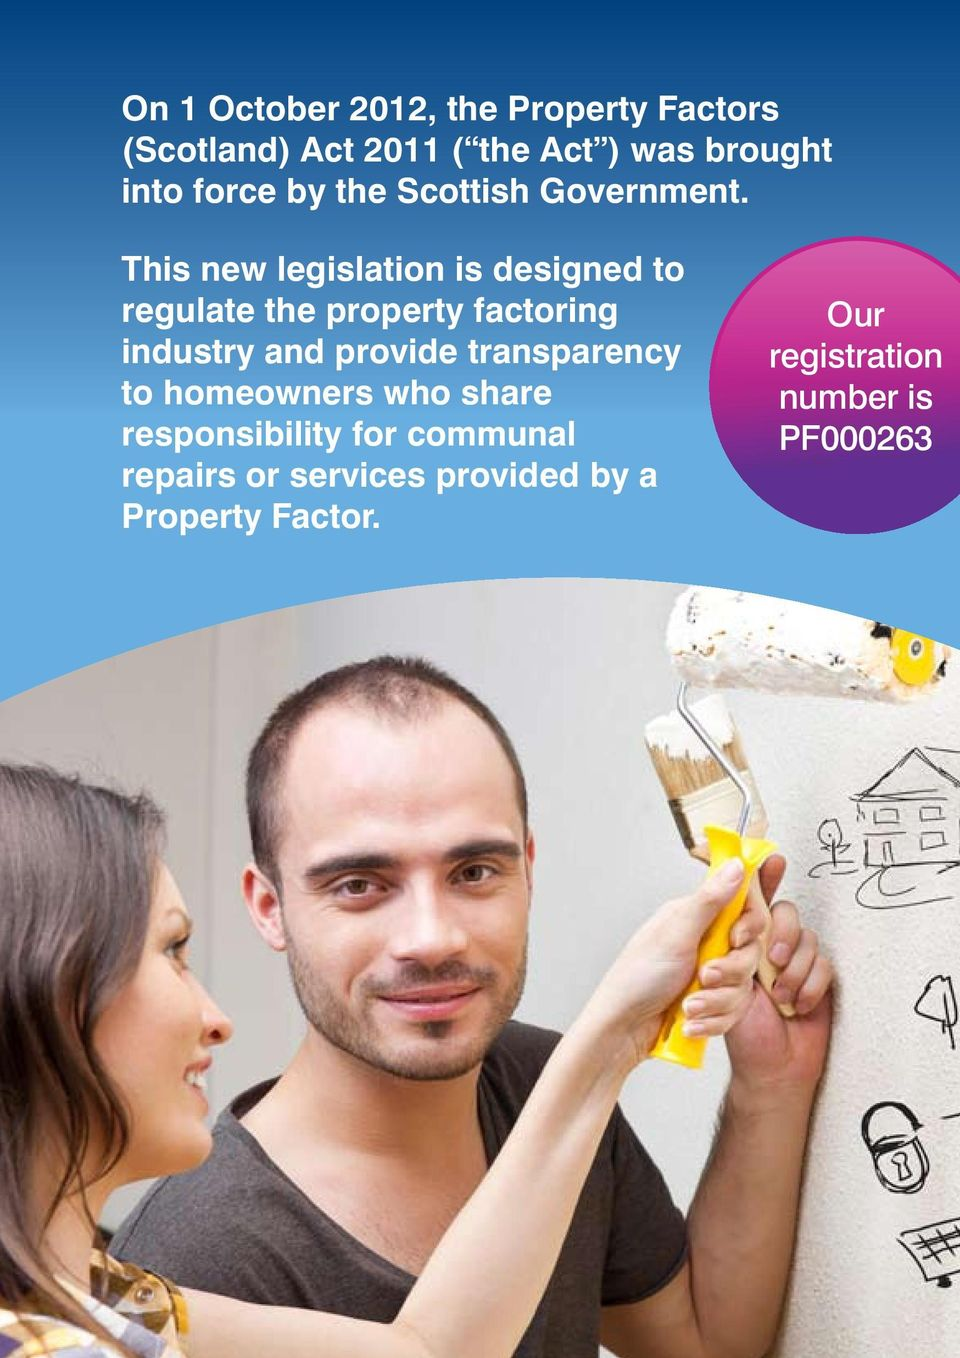 This new legislation is designed to regulate the property factoring industry and provide